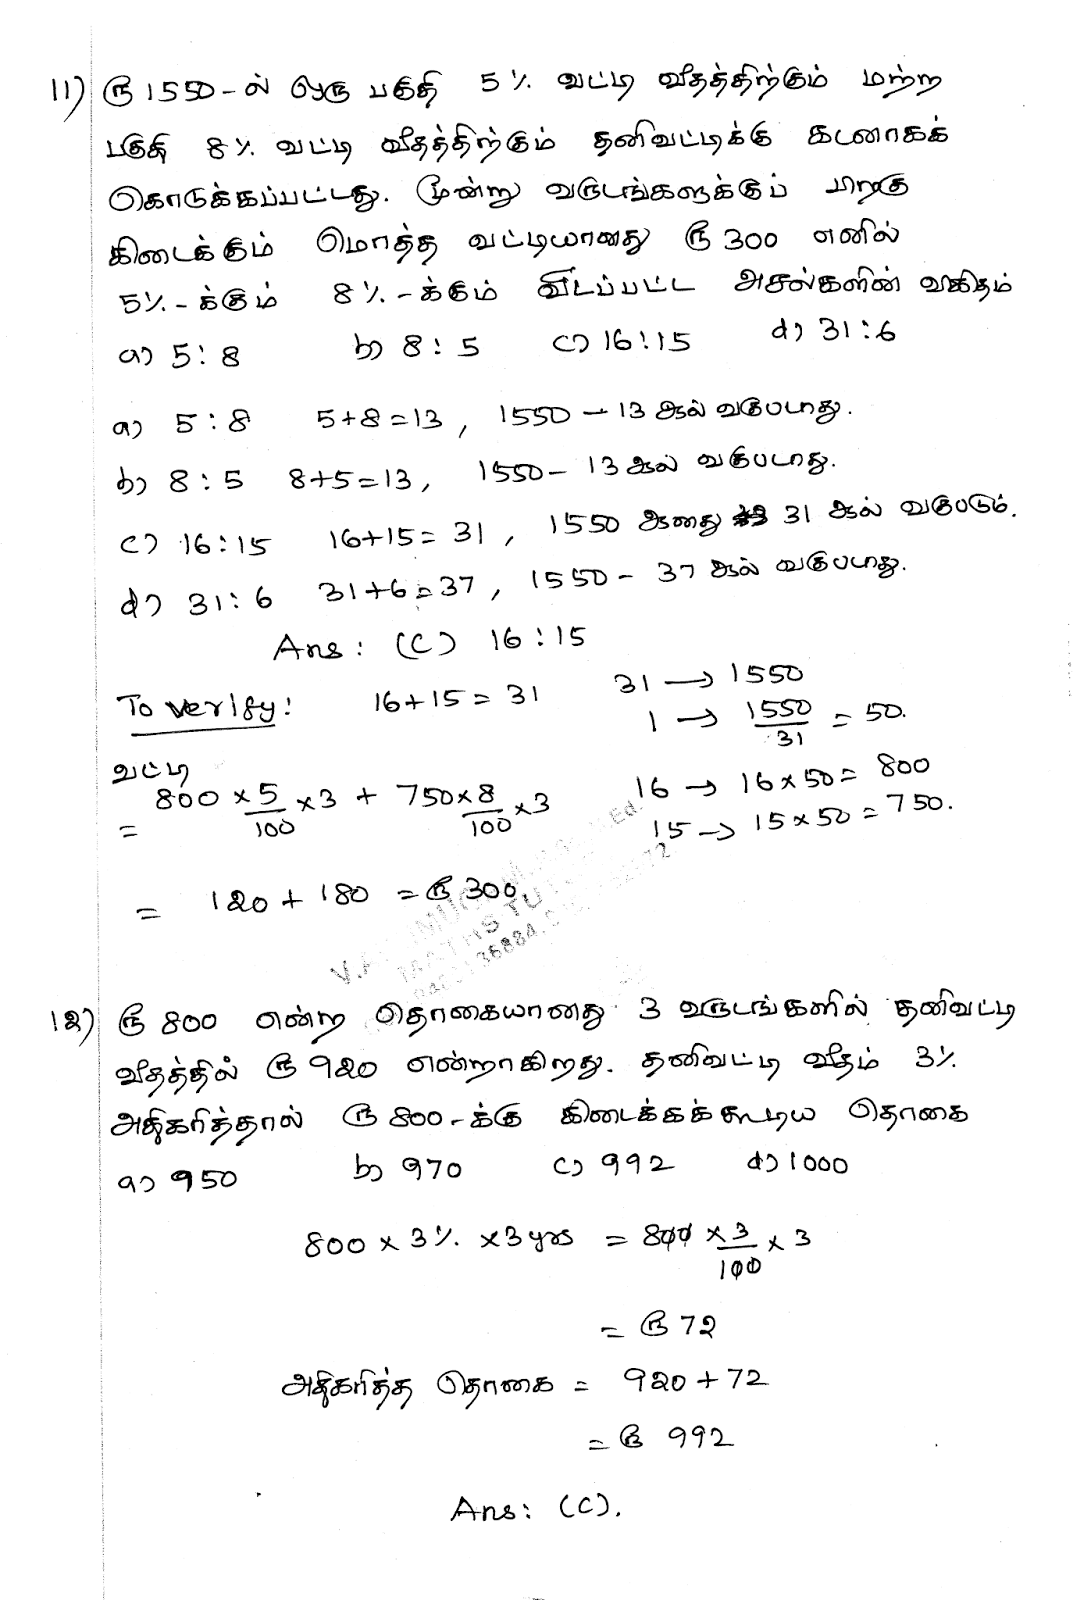 TNPSC - GROUP2 NON INTERVIEW - 2016 EXAM (DATE: 24.1.2016) QUESTIONS - 5